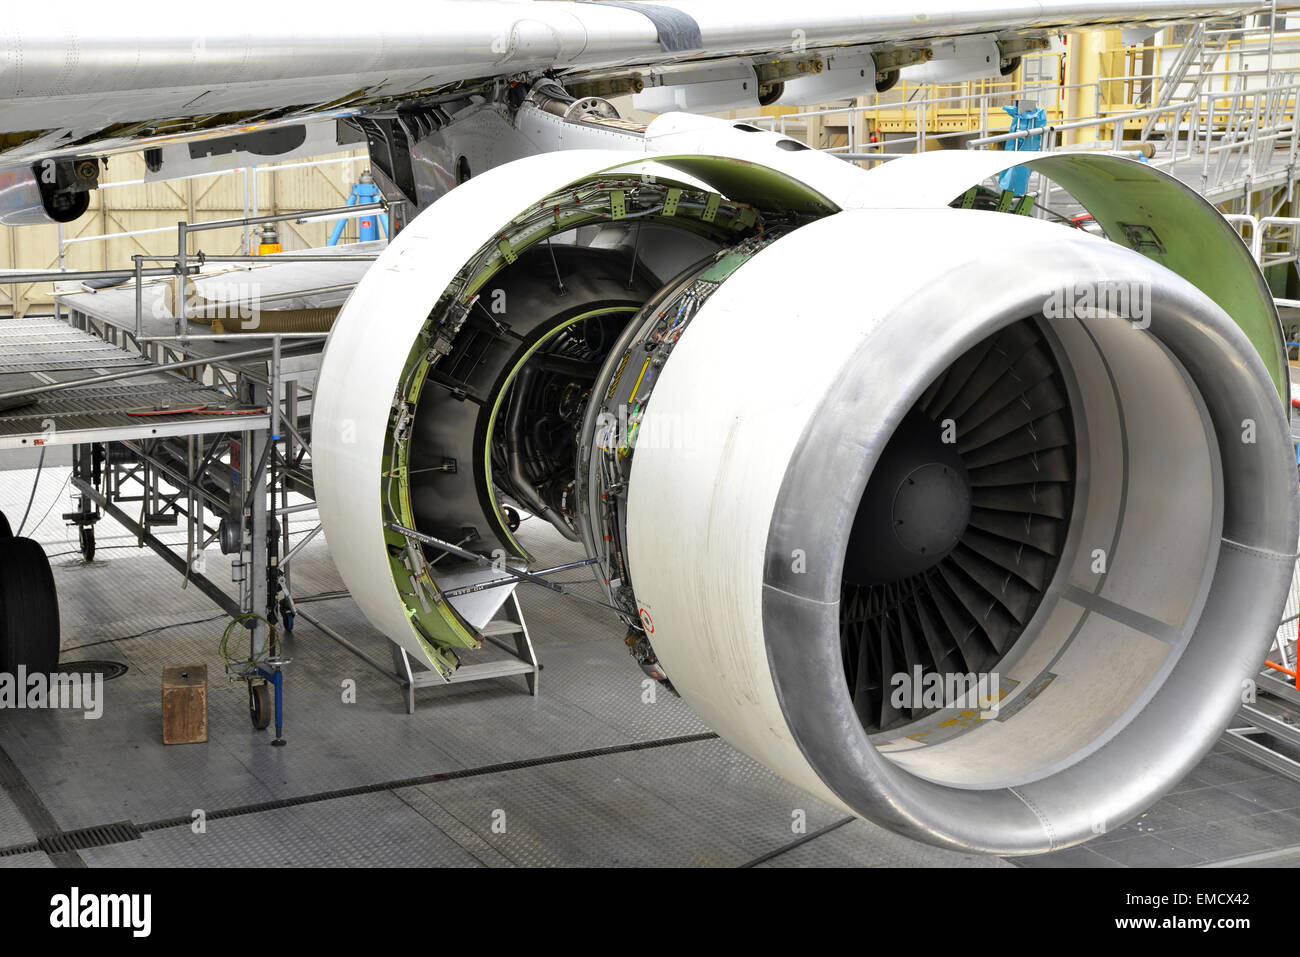 Jet engine of an unfinished airplane in a hangar - Stock Image